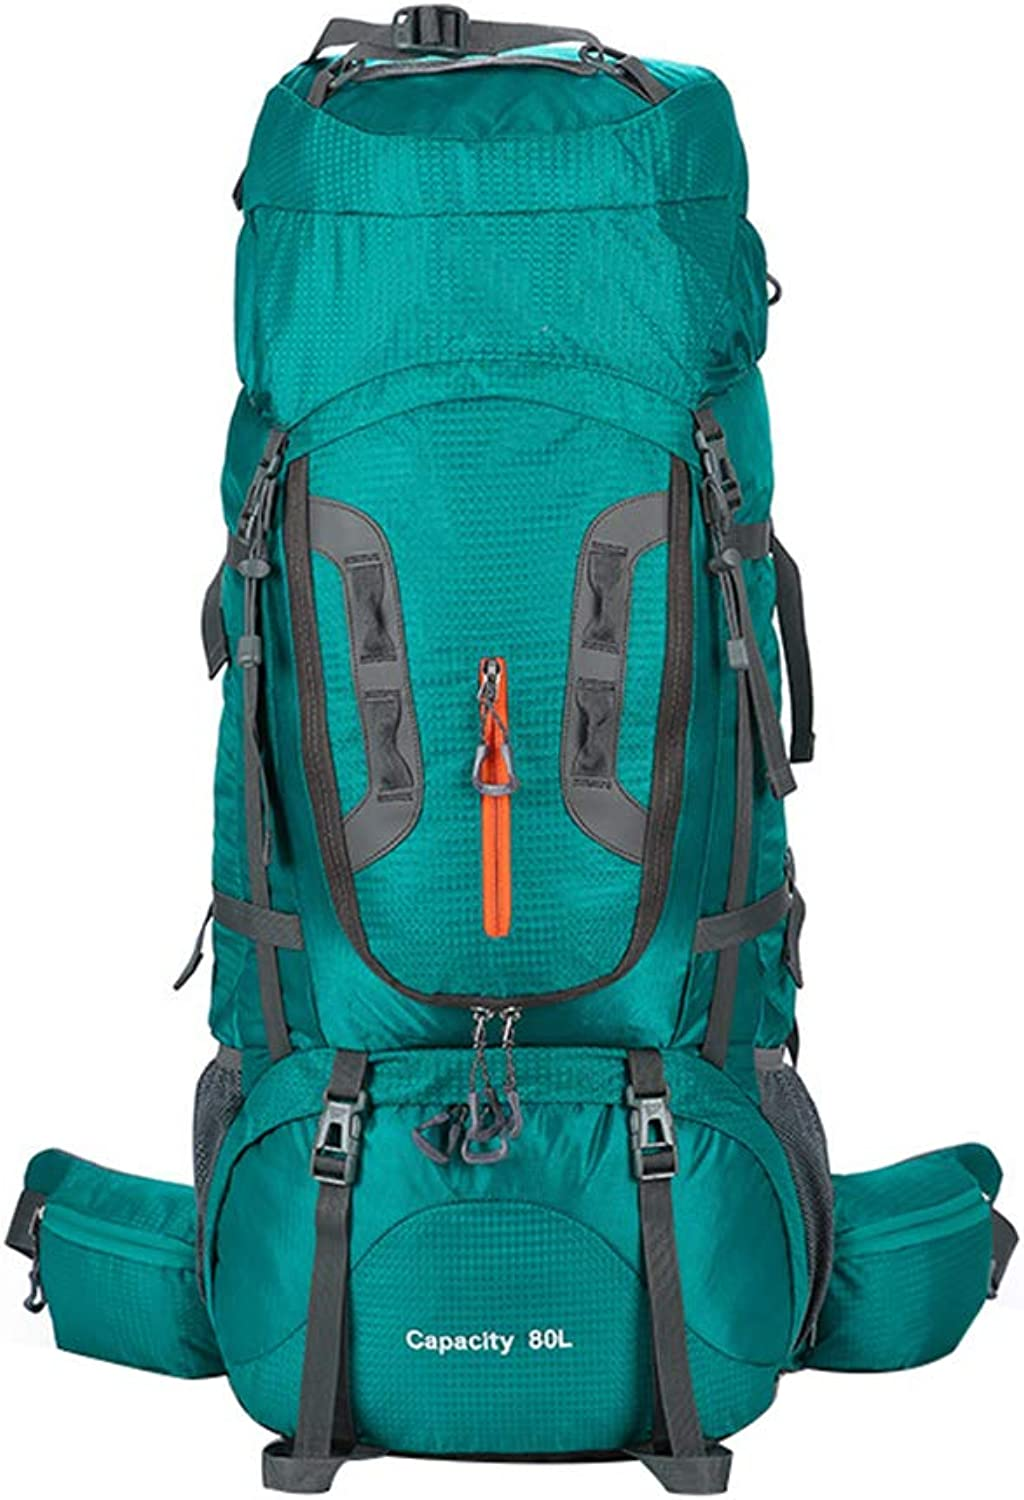 Backpack Opeof 80L Unisex Outdoor Camping Hiking Climbing Large Mountaineering Backpacks Bags  bluee